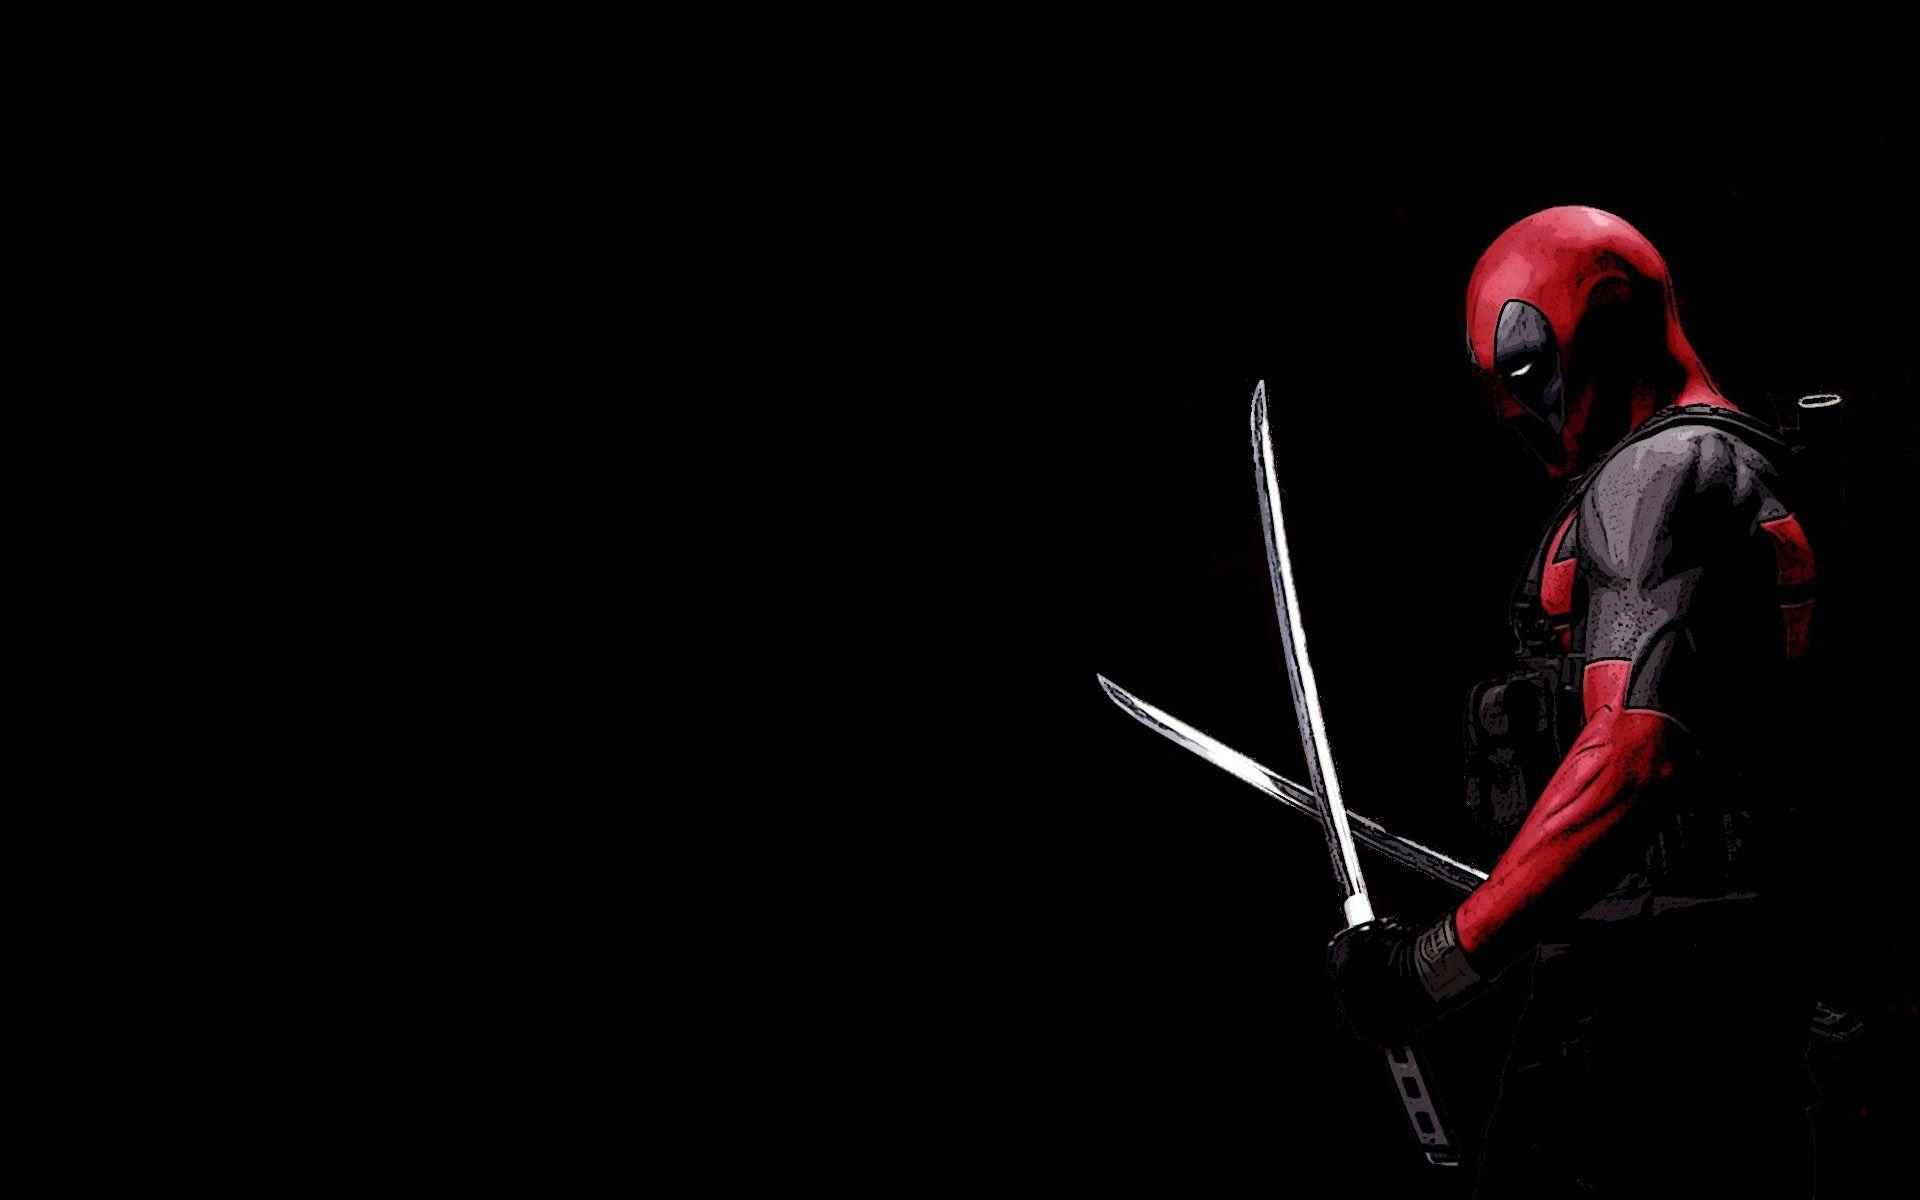 deadpool wallpaper hd 1080p - photo #5